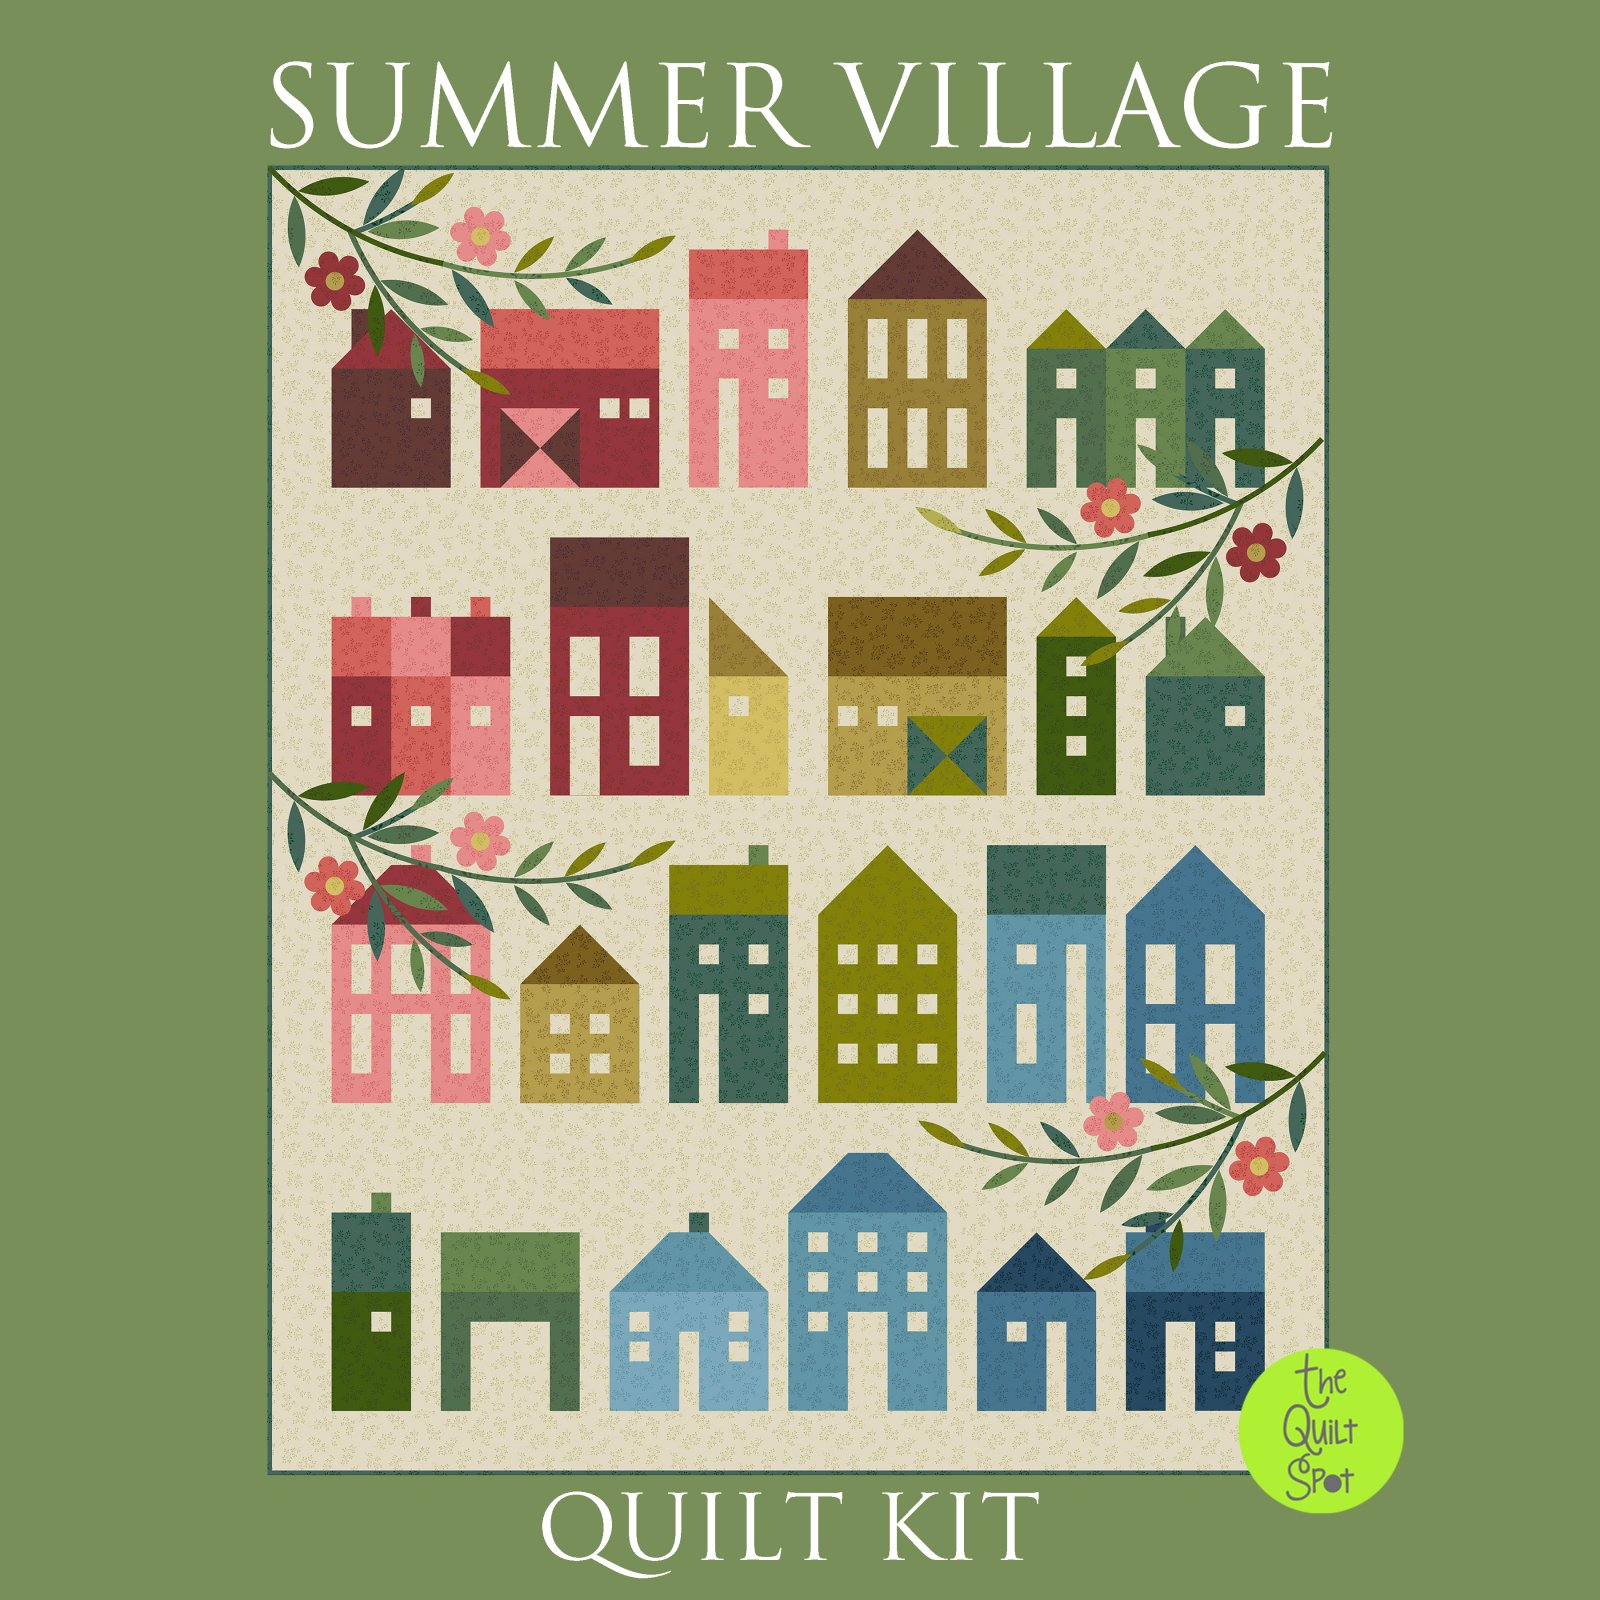 Summer Village Quilt Kit - Olive Branch Fabric by Laundry Basket Quilts